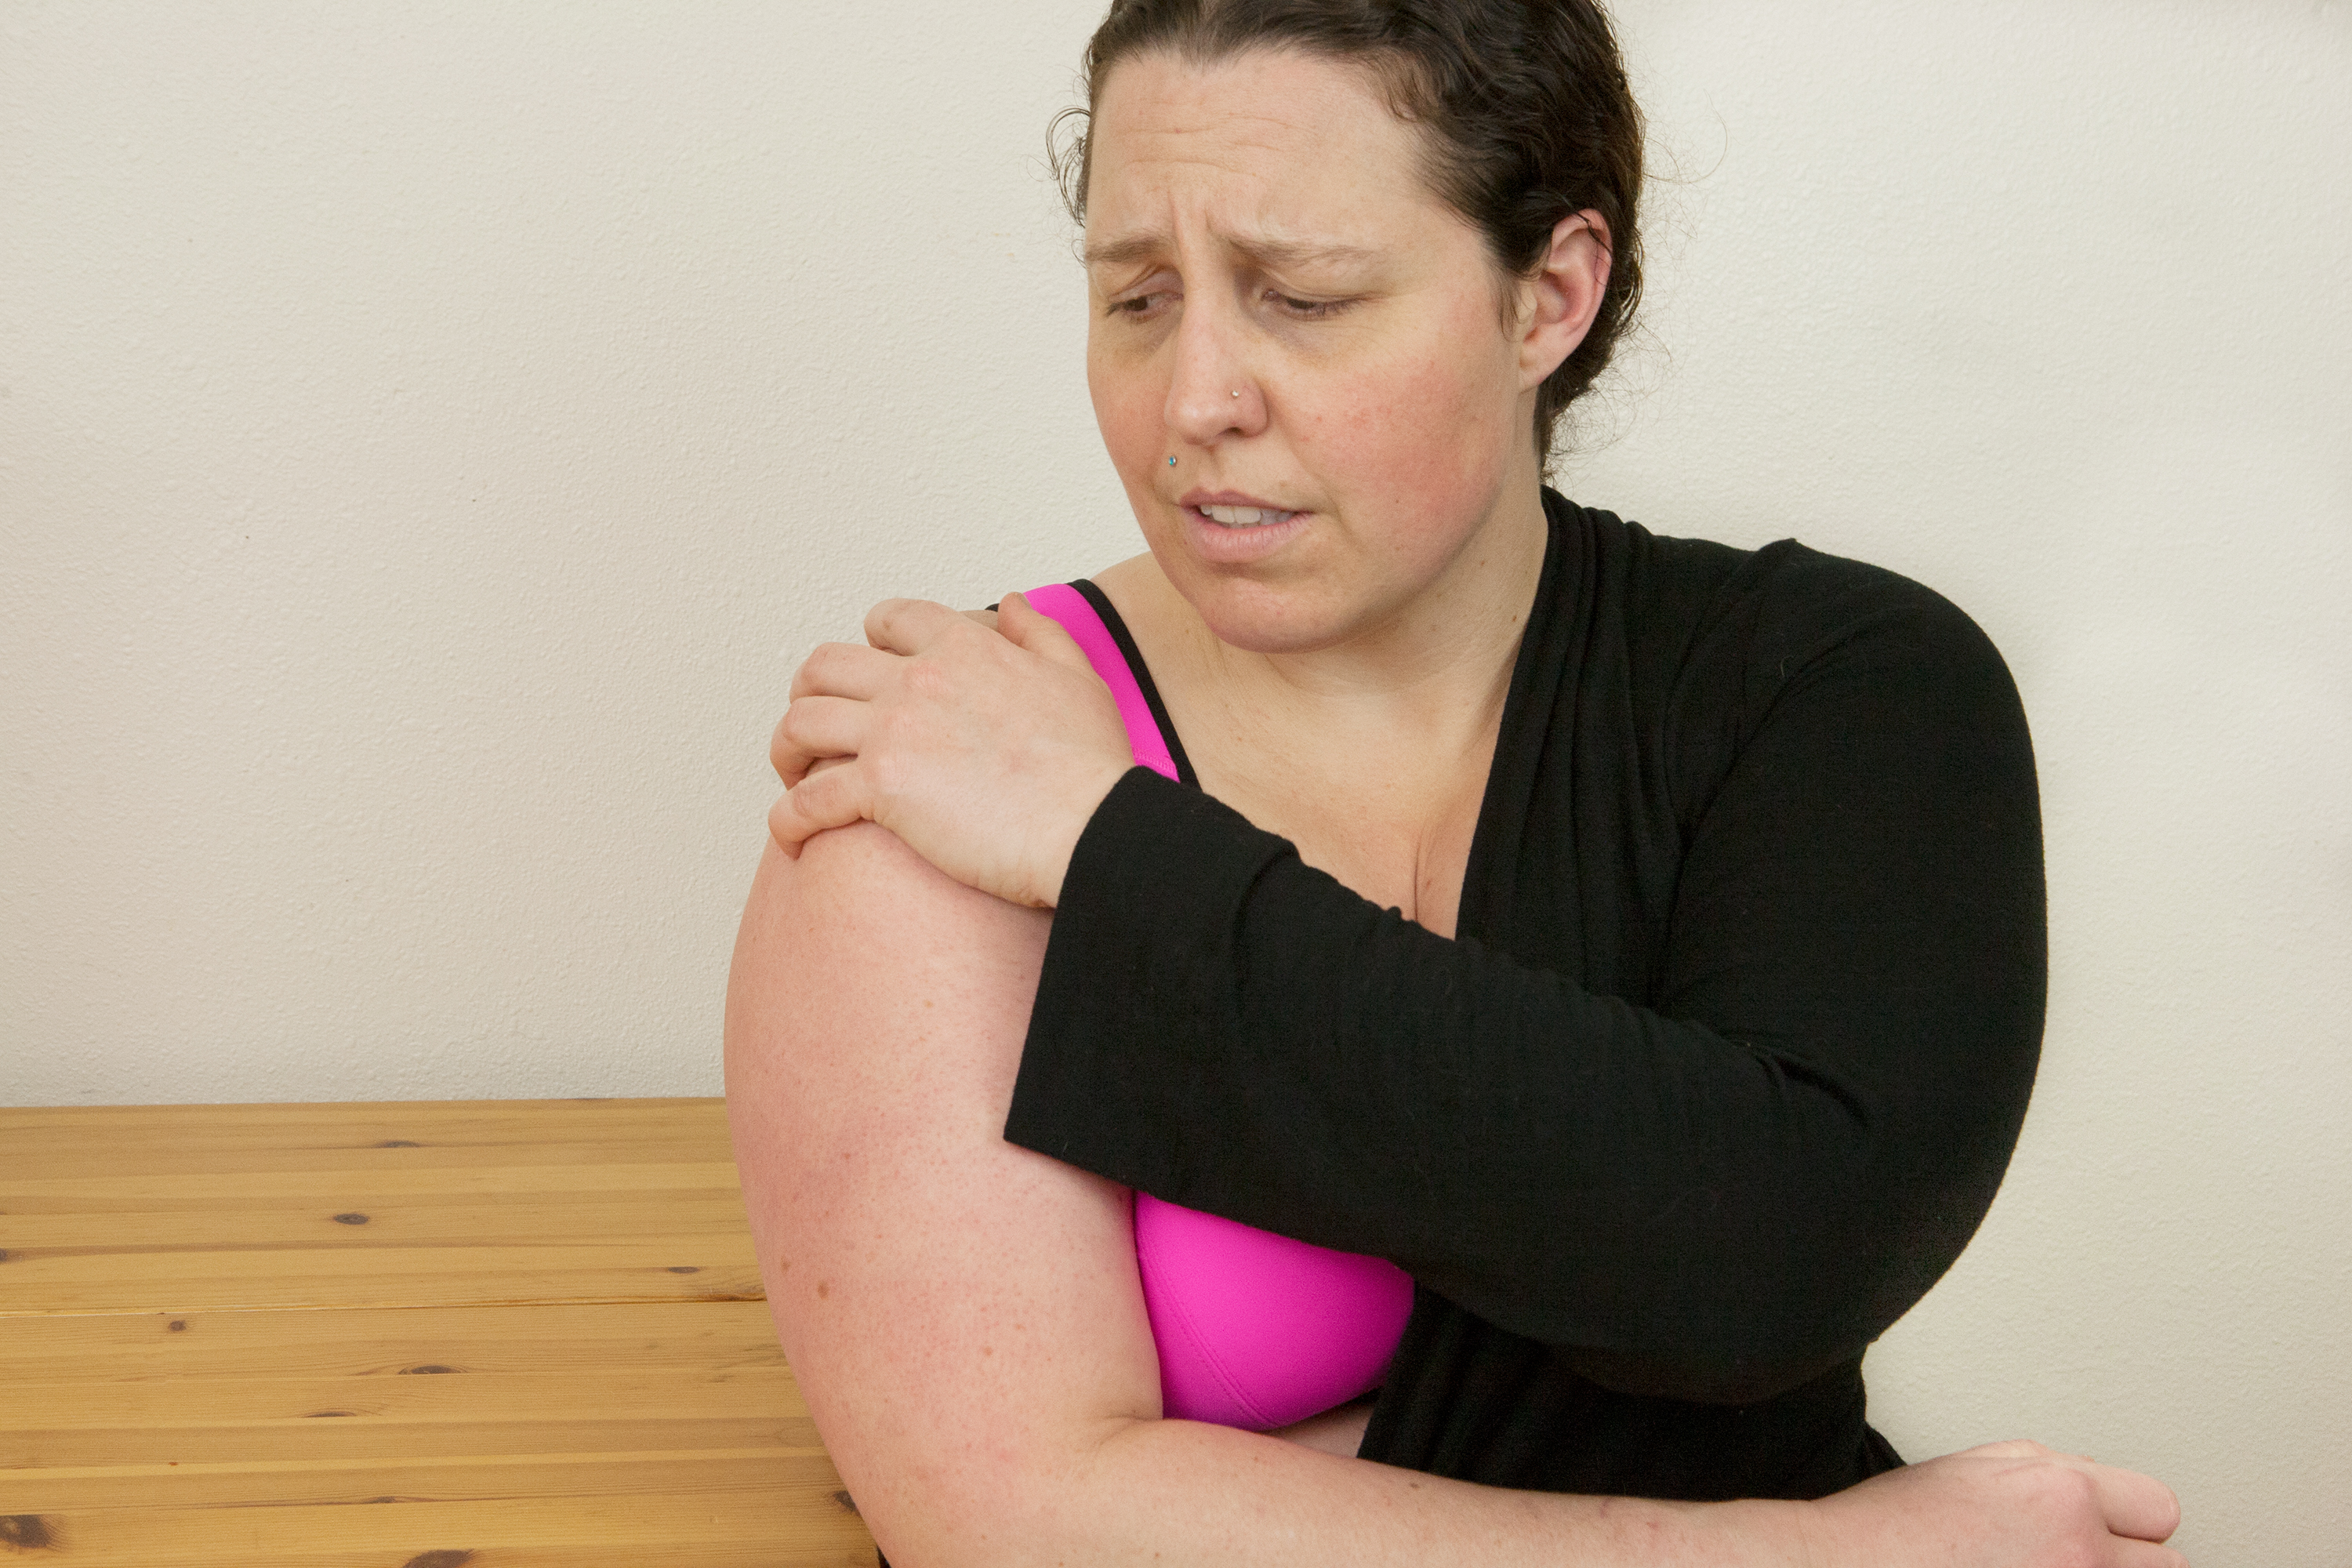 How To Apply Shoulder Injury Compression Wraps